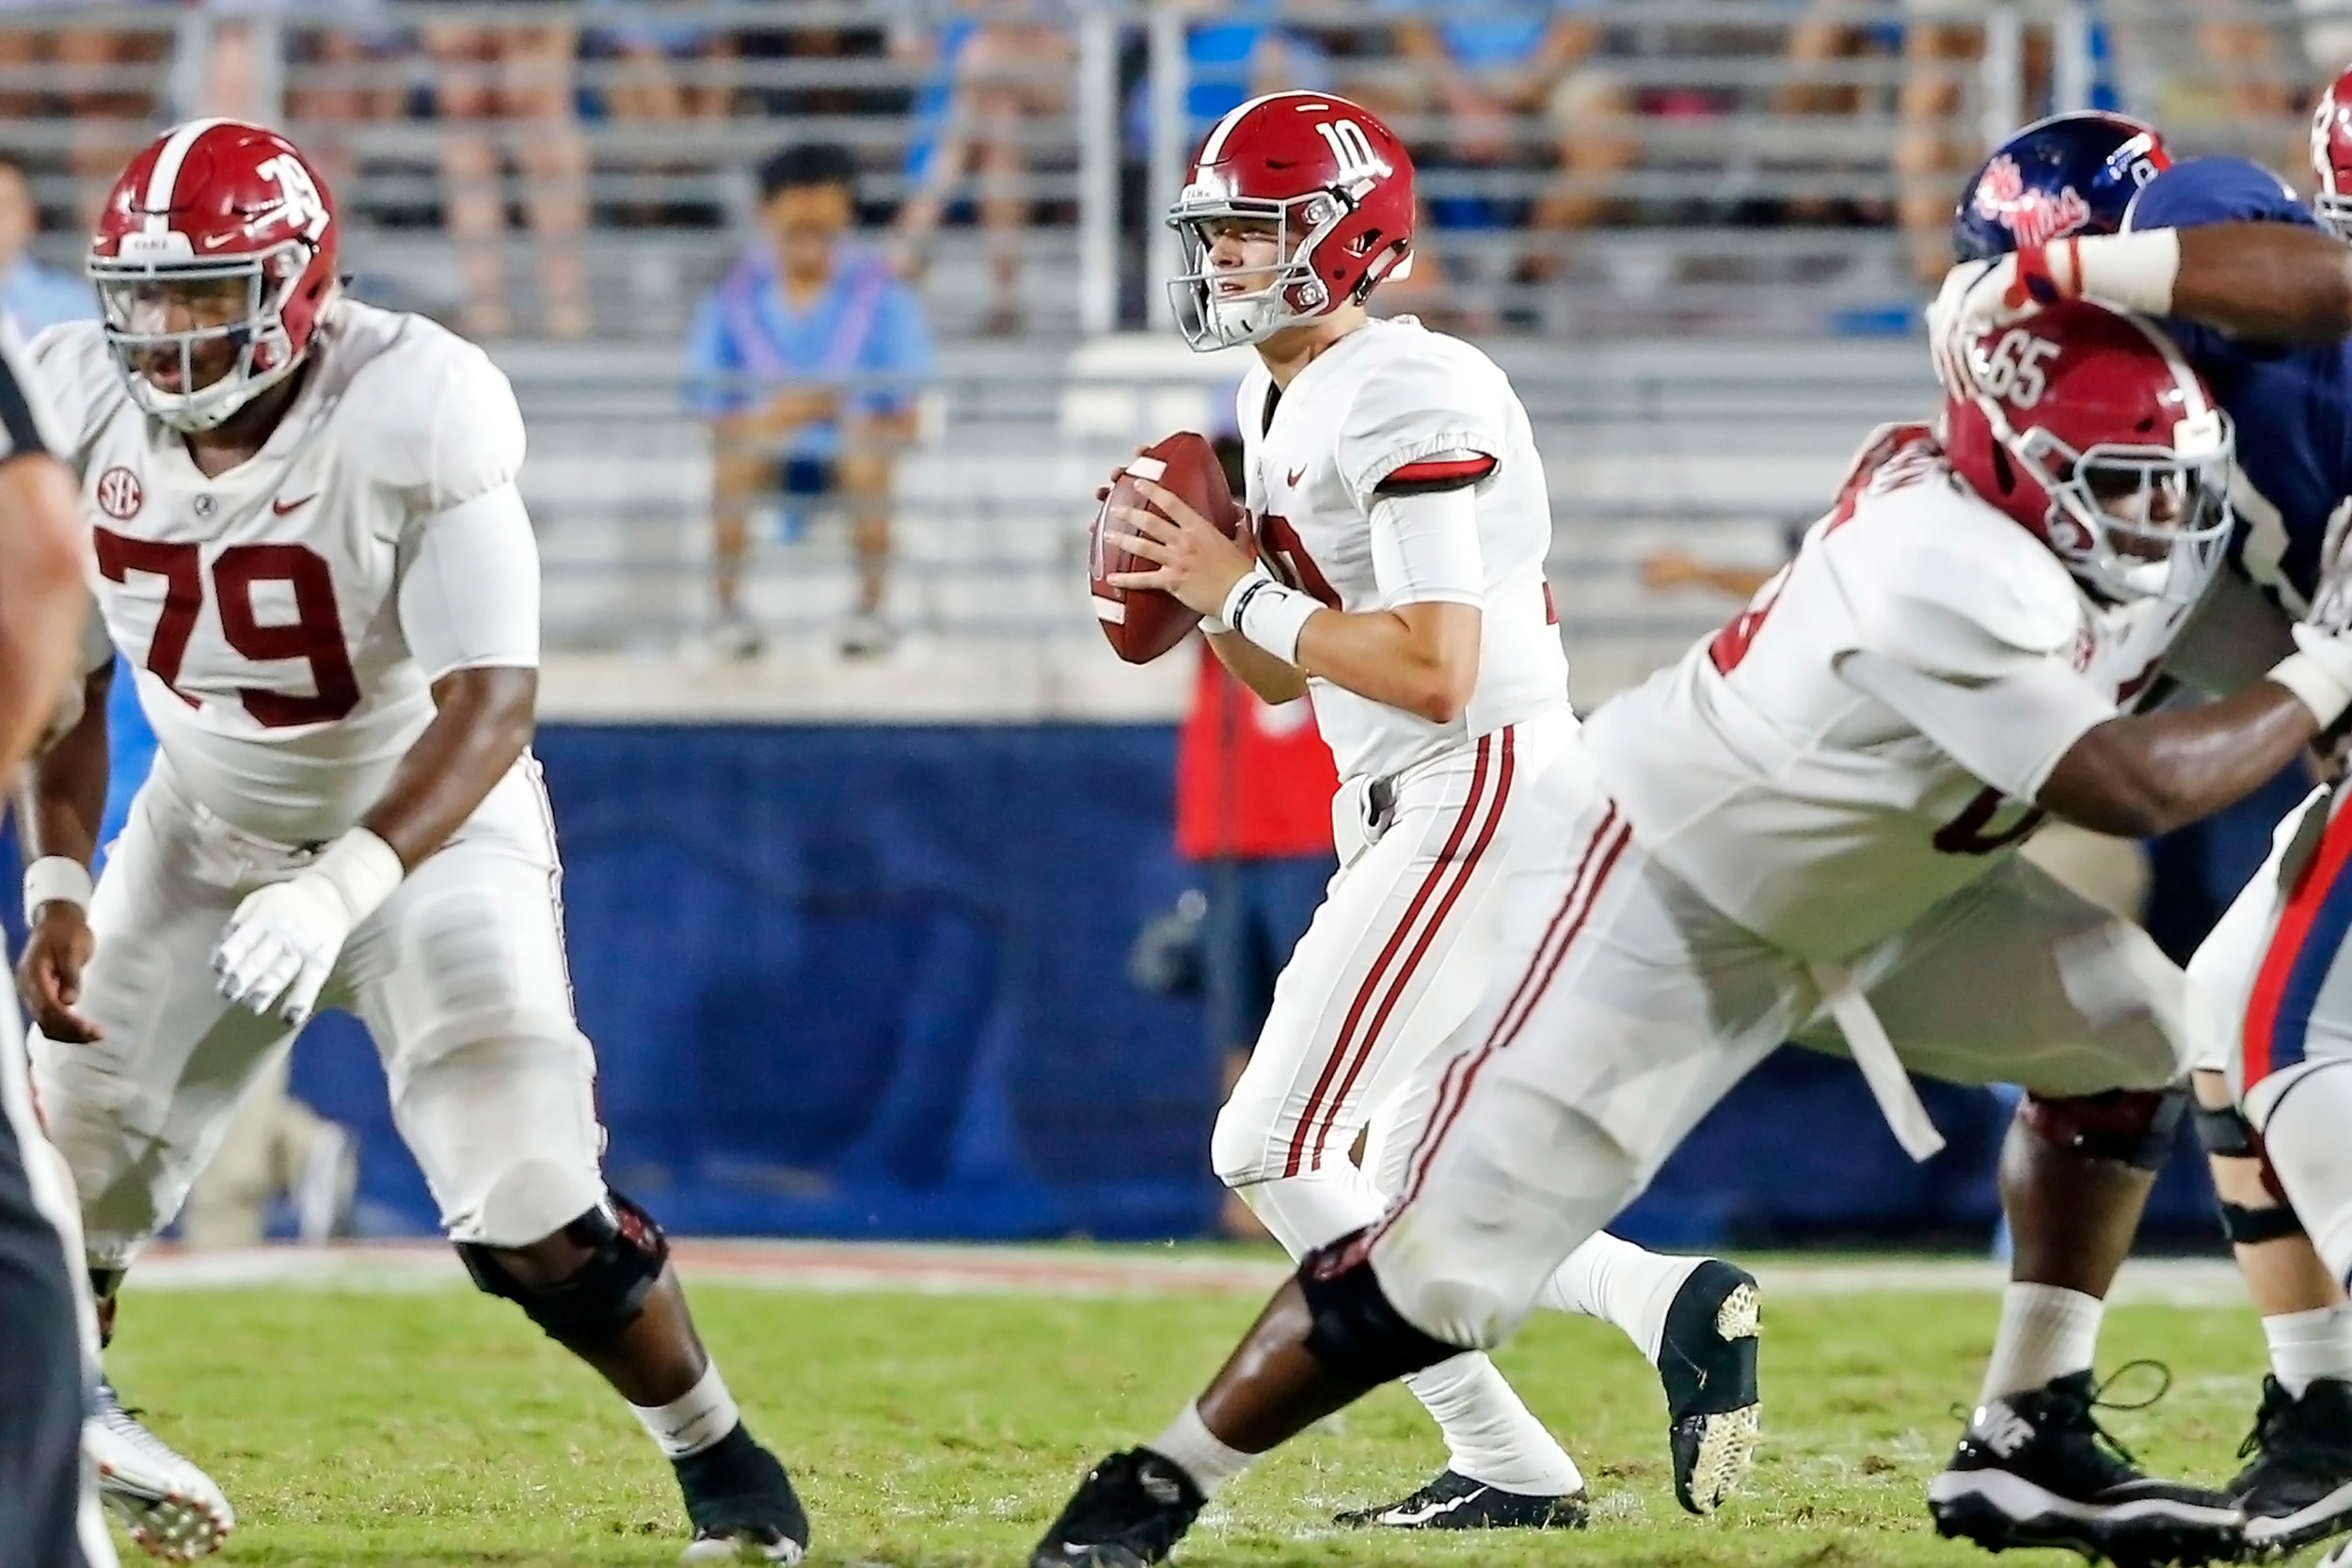 Alabama Crimson Tide quarterback Mac Jones (10) drops back to pass during the game between the University of Alabama and Ole Miss at Vaught-Hemingway Stadium. Jason Clark / Daily Mountain Eagle